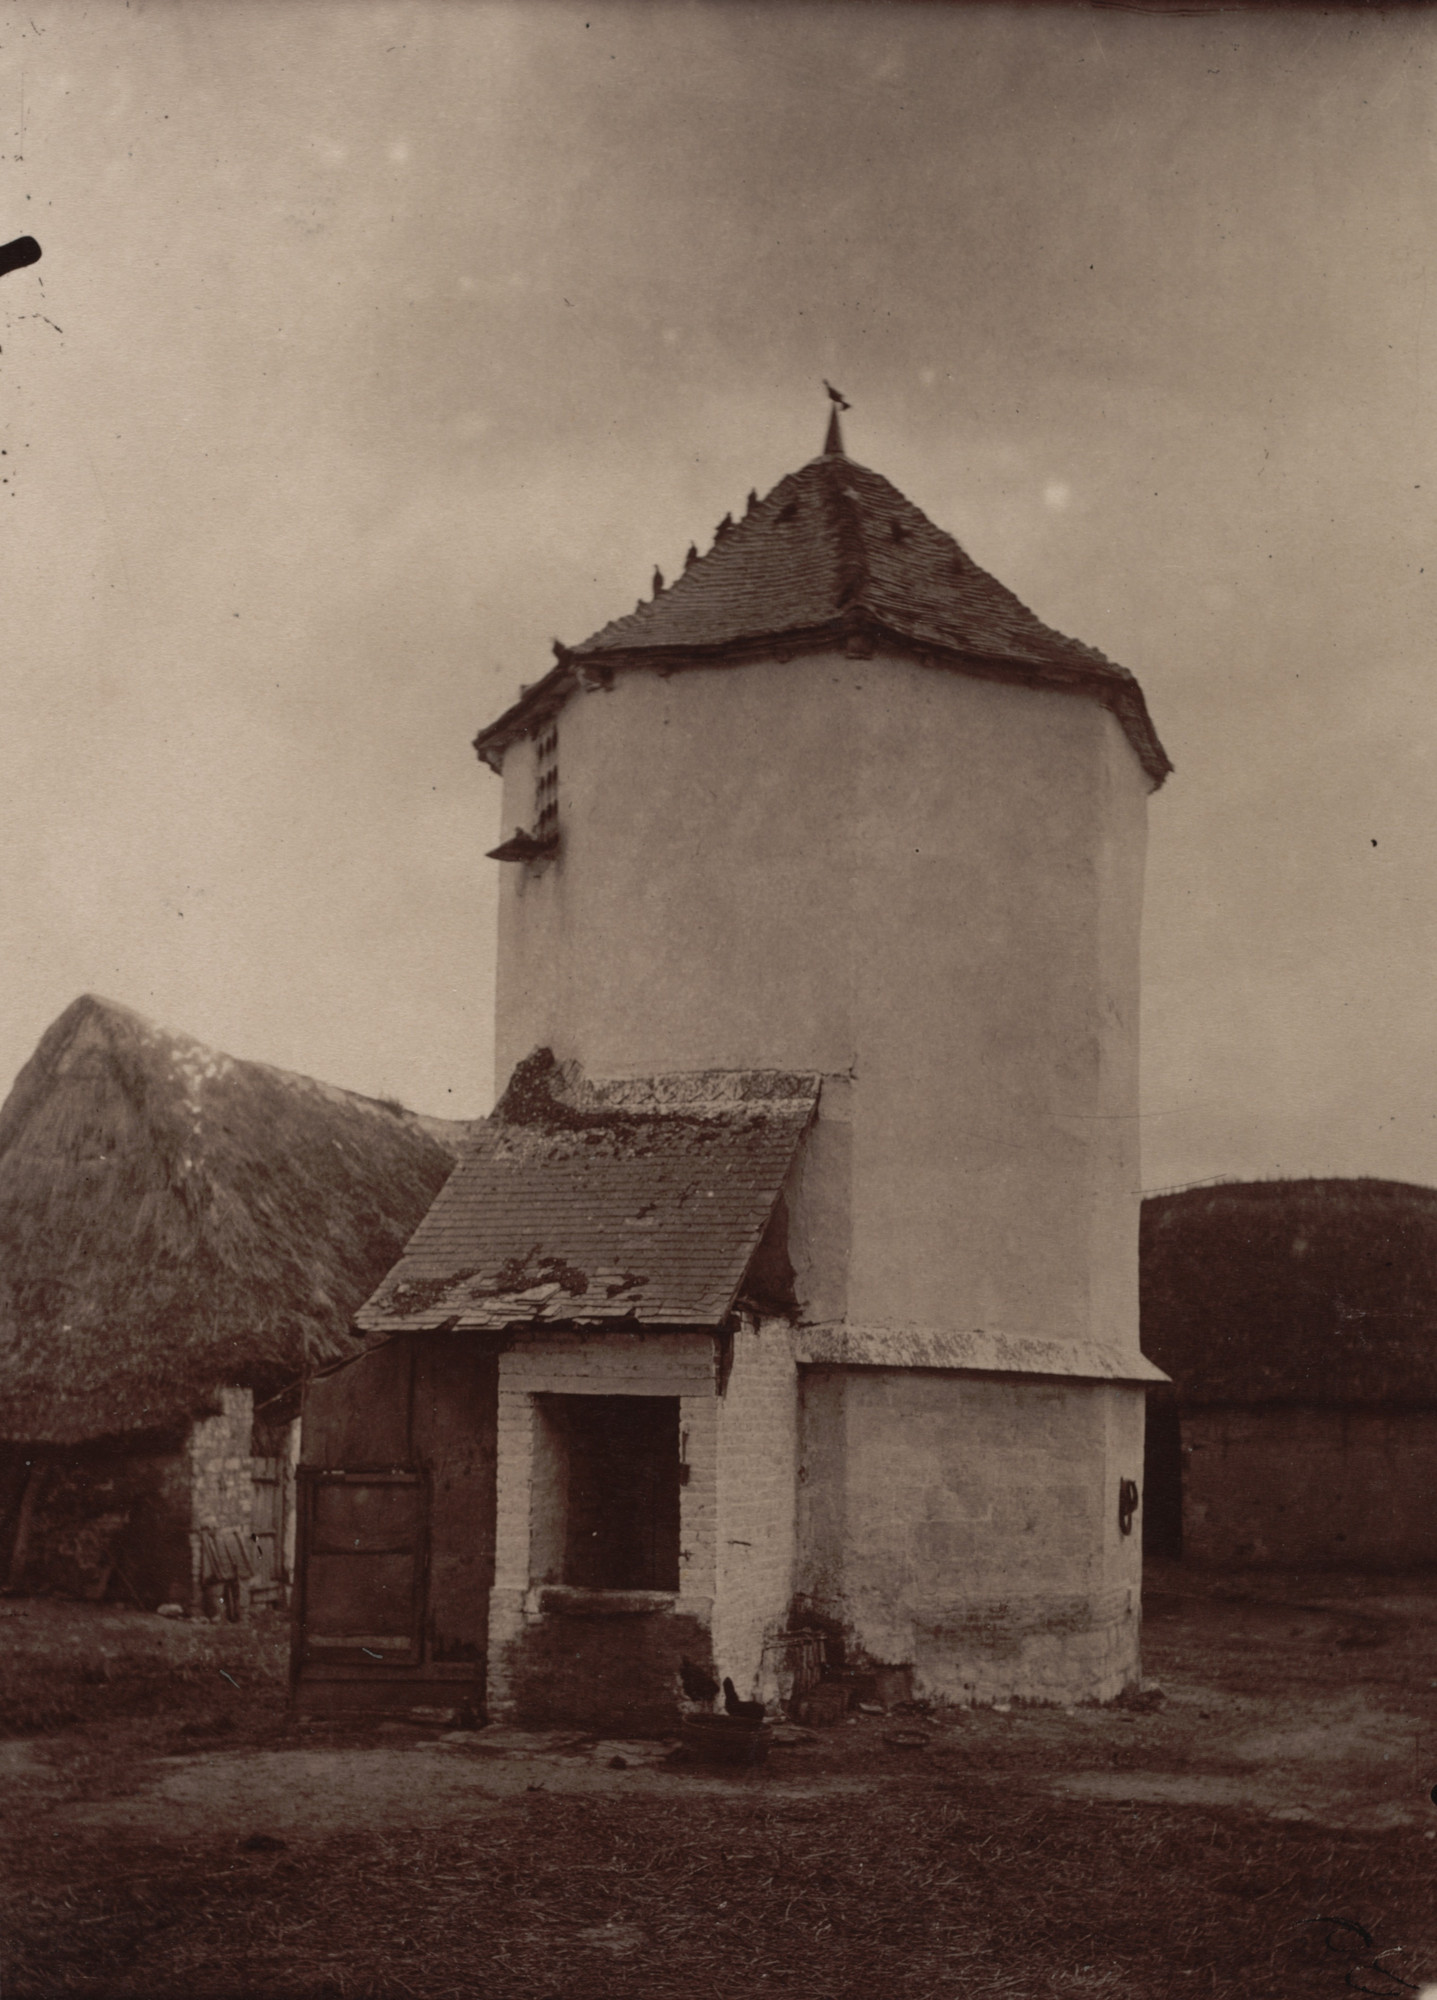 Eugène Atget. Ferme, Abbeville. Probably before 1898